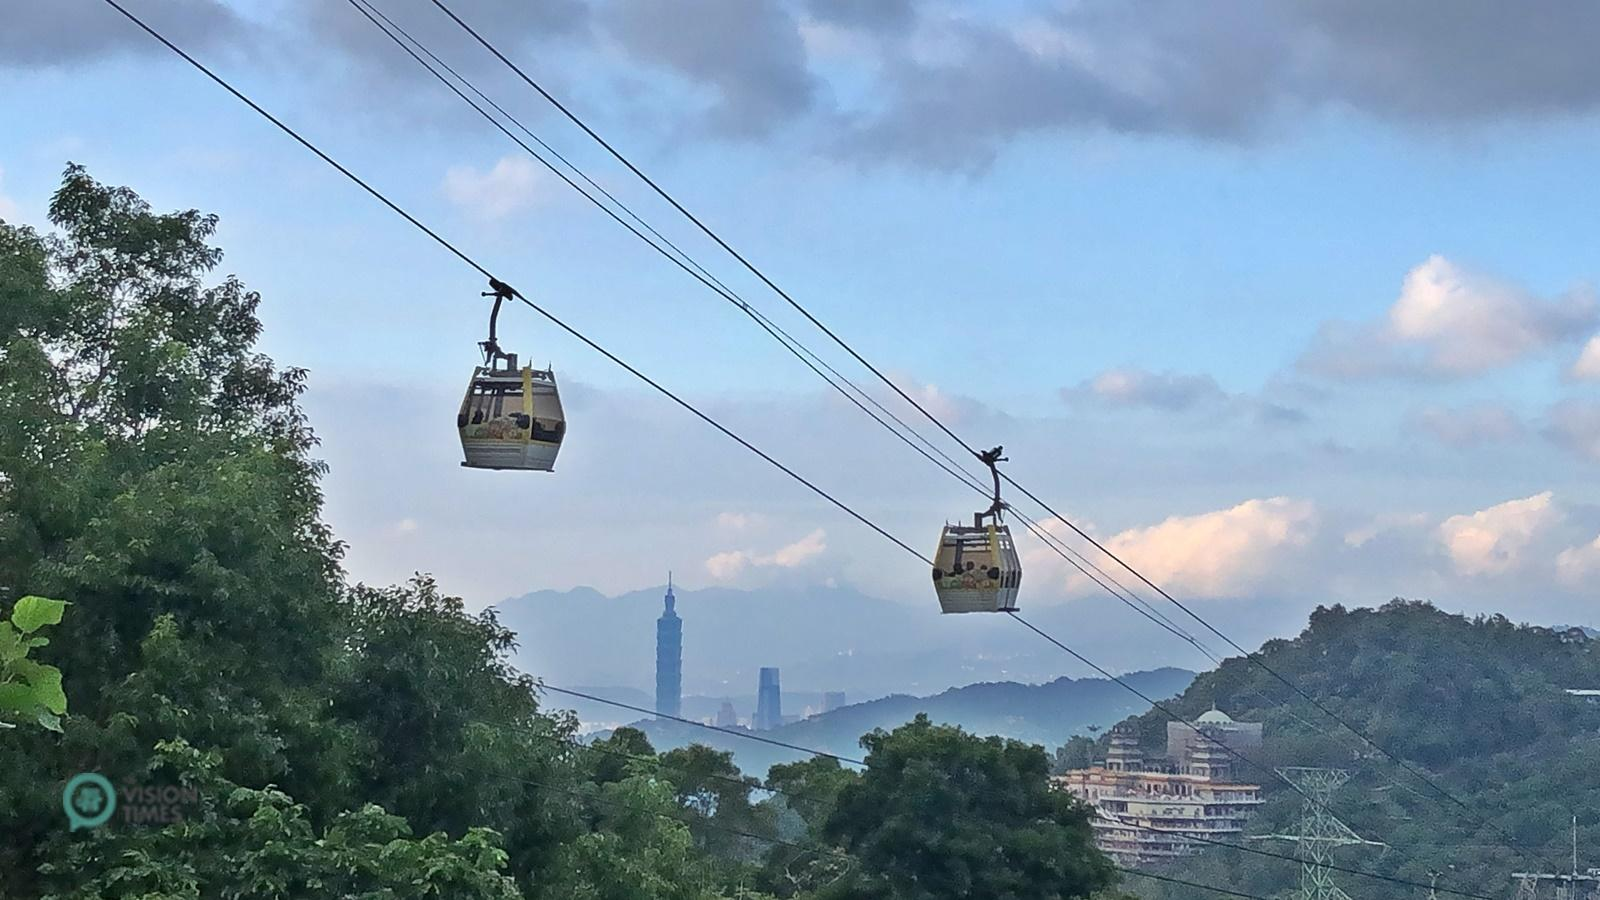 The best way to visit Maokong is taking the Maokong Gondola scenic cable car. (Image: Billy Shyu / Vision Times)